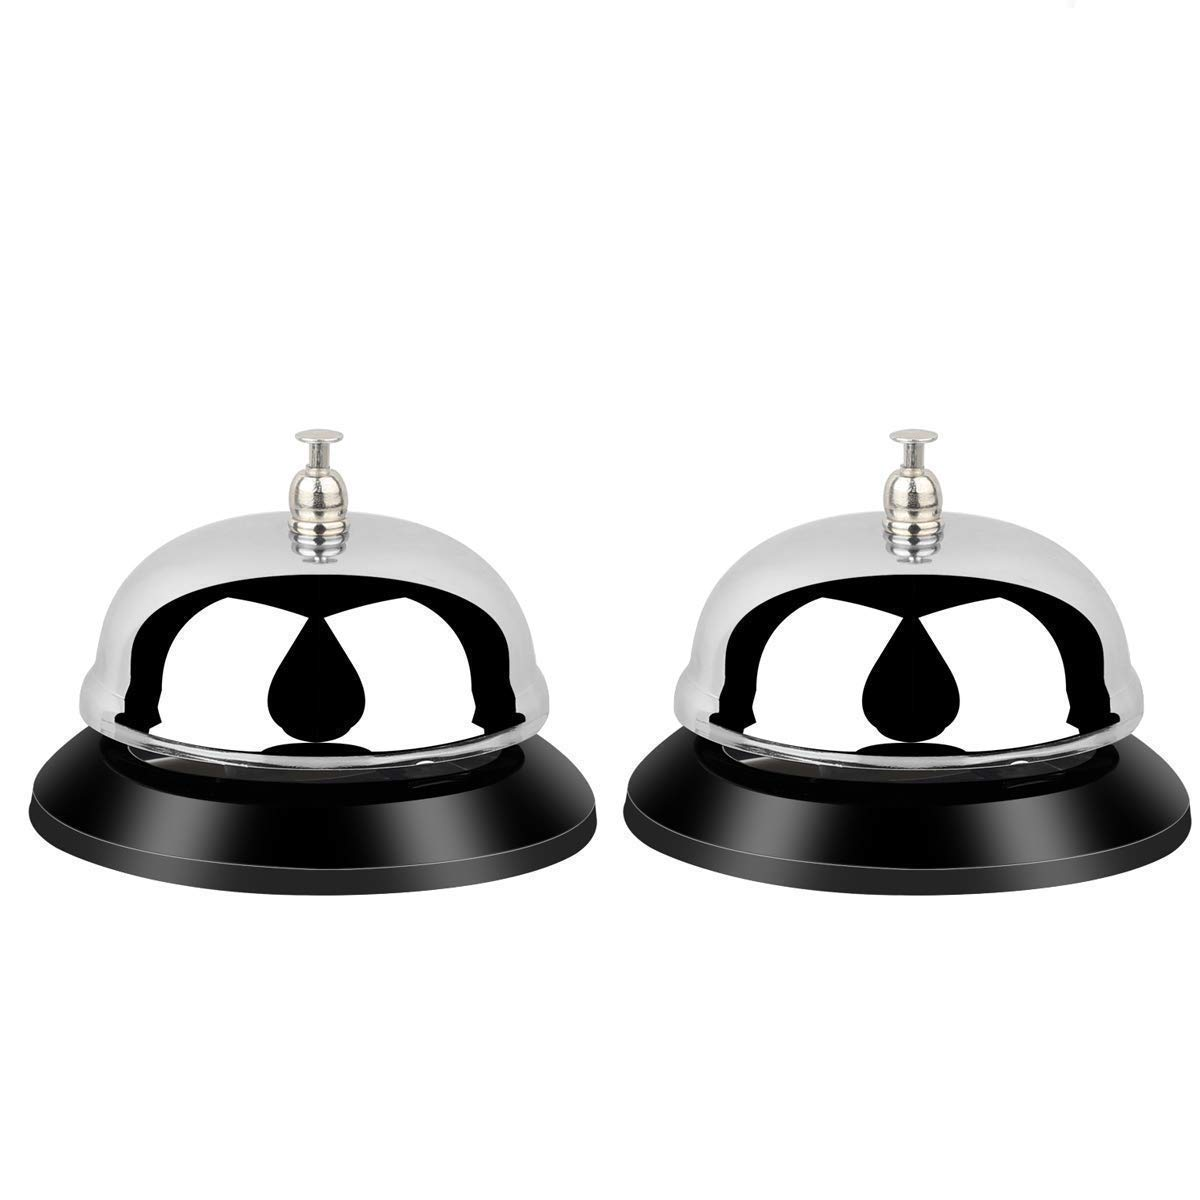 YYPLUS 2 Pack Desk Service Bells, Desk Big Call Bell for Hotels, Schools, Restaurants, Hospitals, Chrome Finish, All-Metal Construction (3.3 inch) by YYPLUS